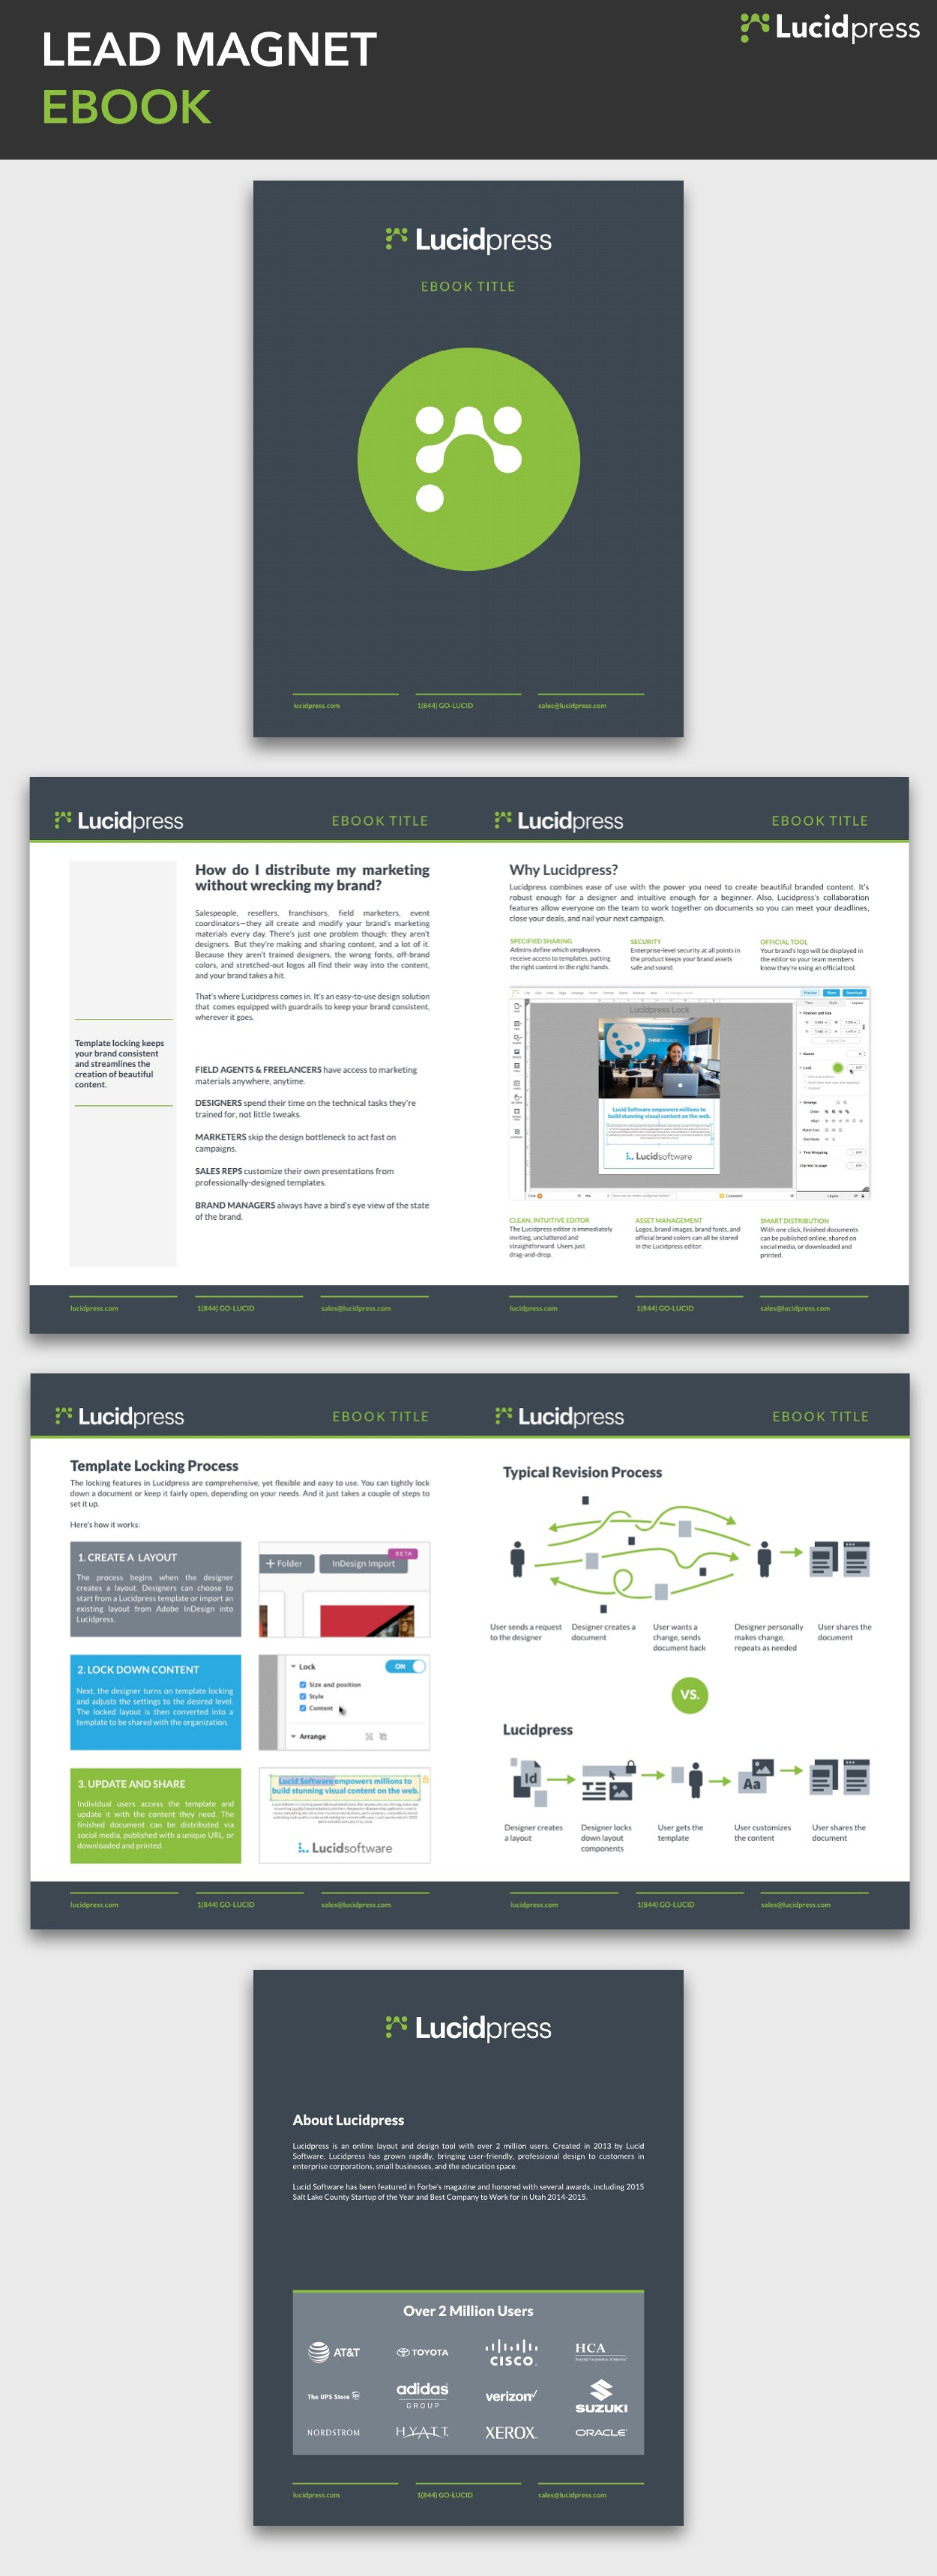 Free marketing ebook templates